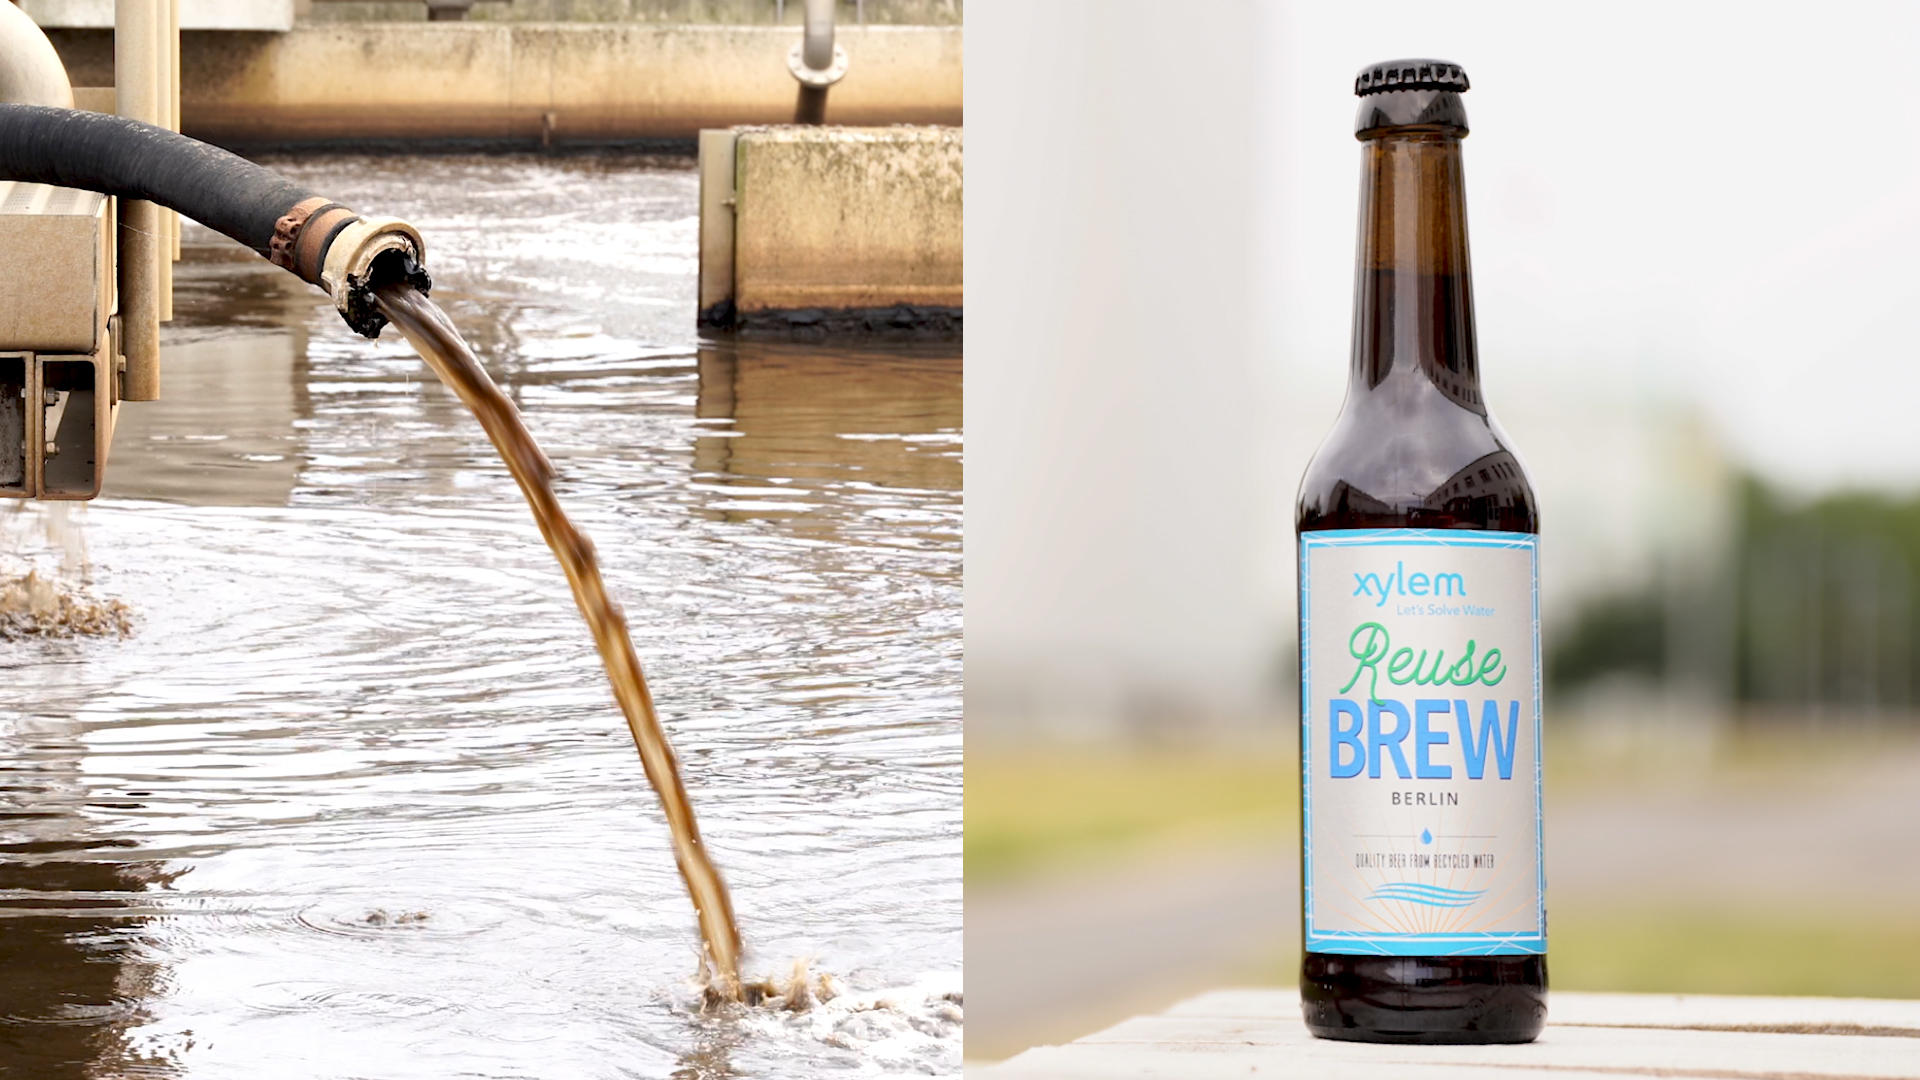 Video: Waste not: This rare beer was made from Berlin's reused toilet water